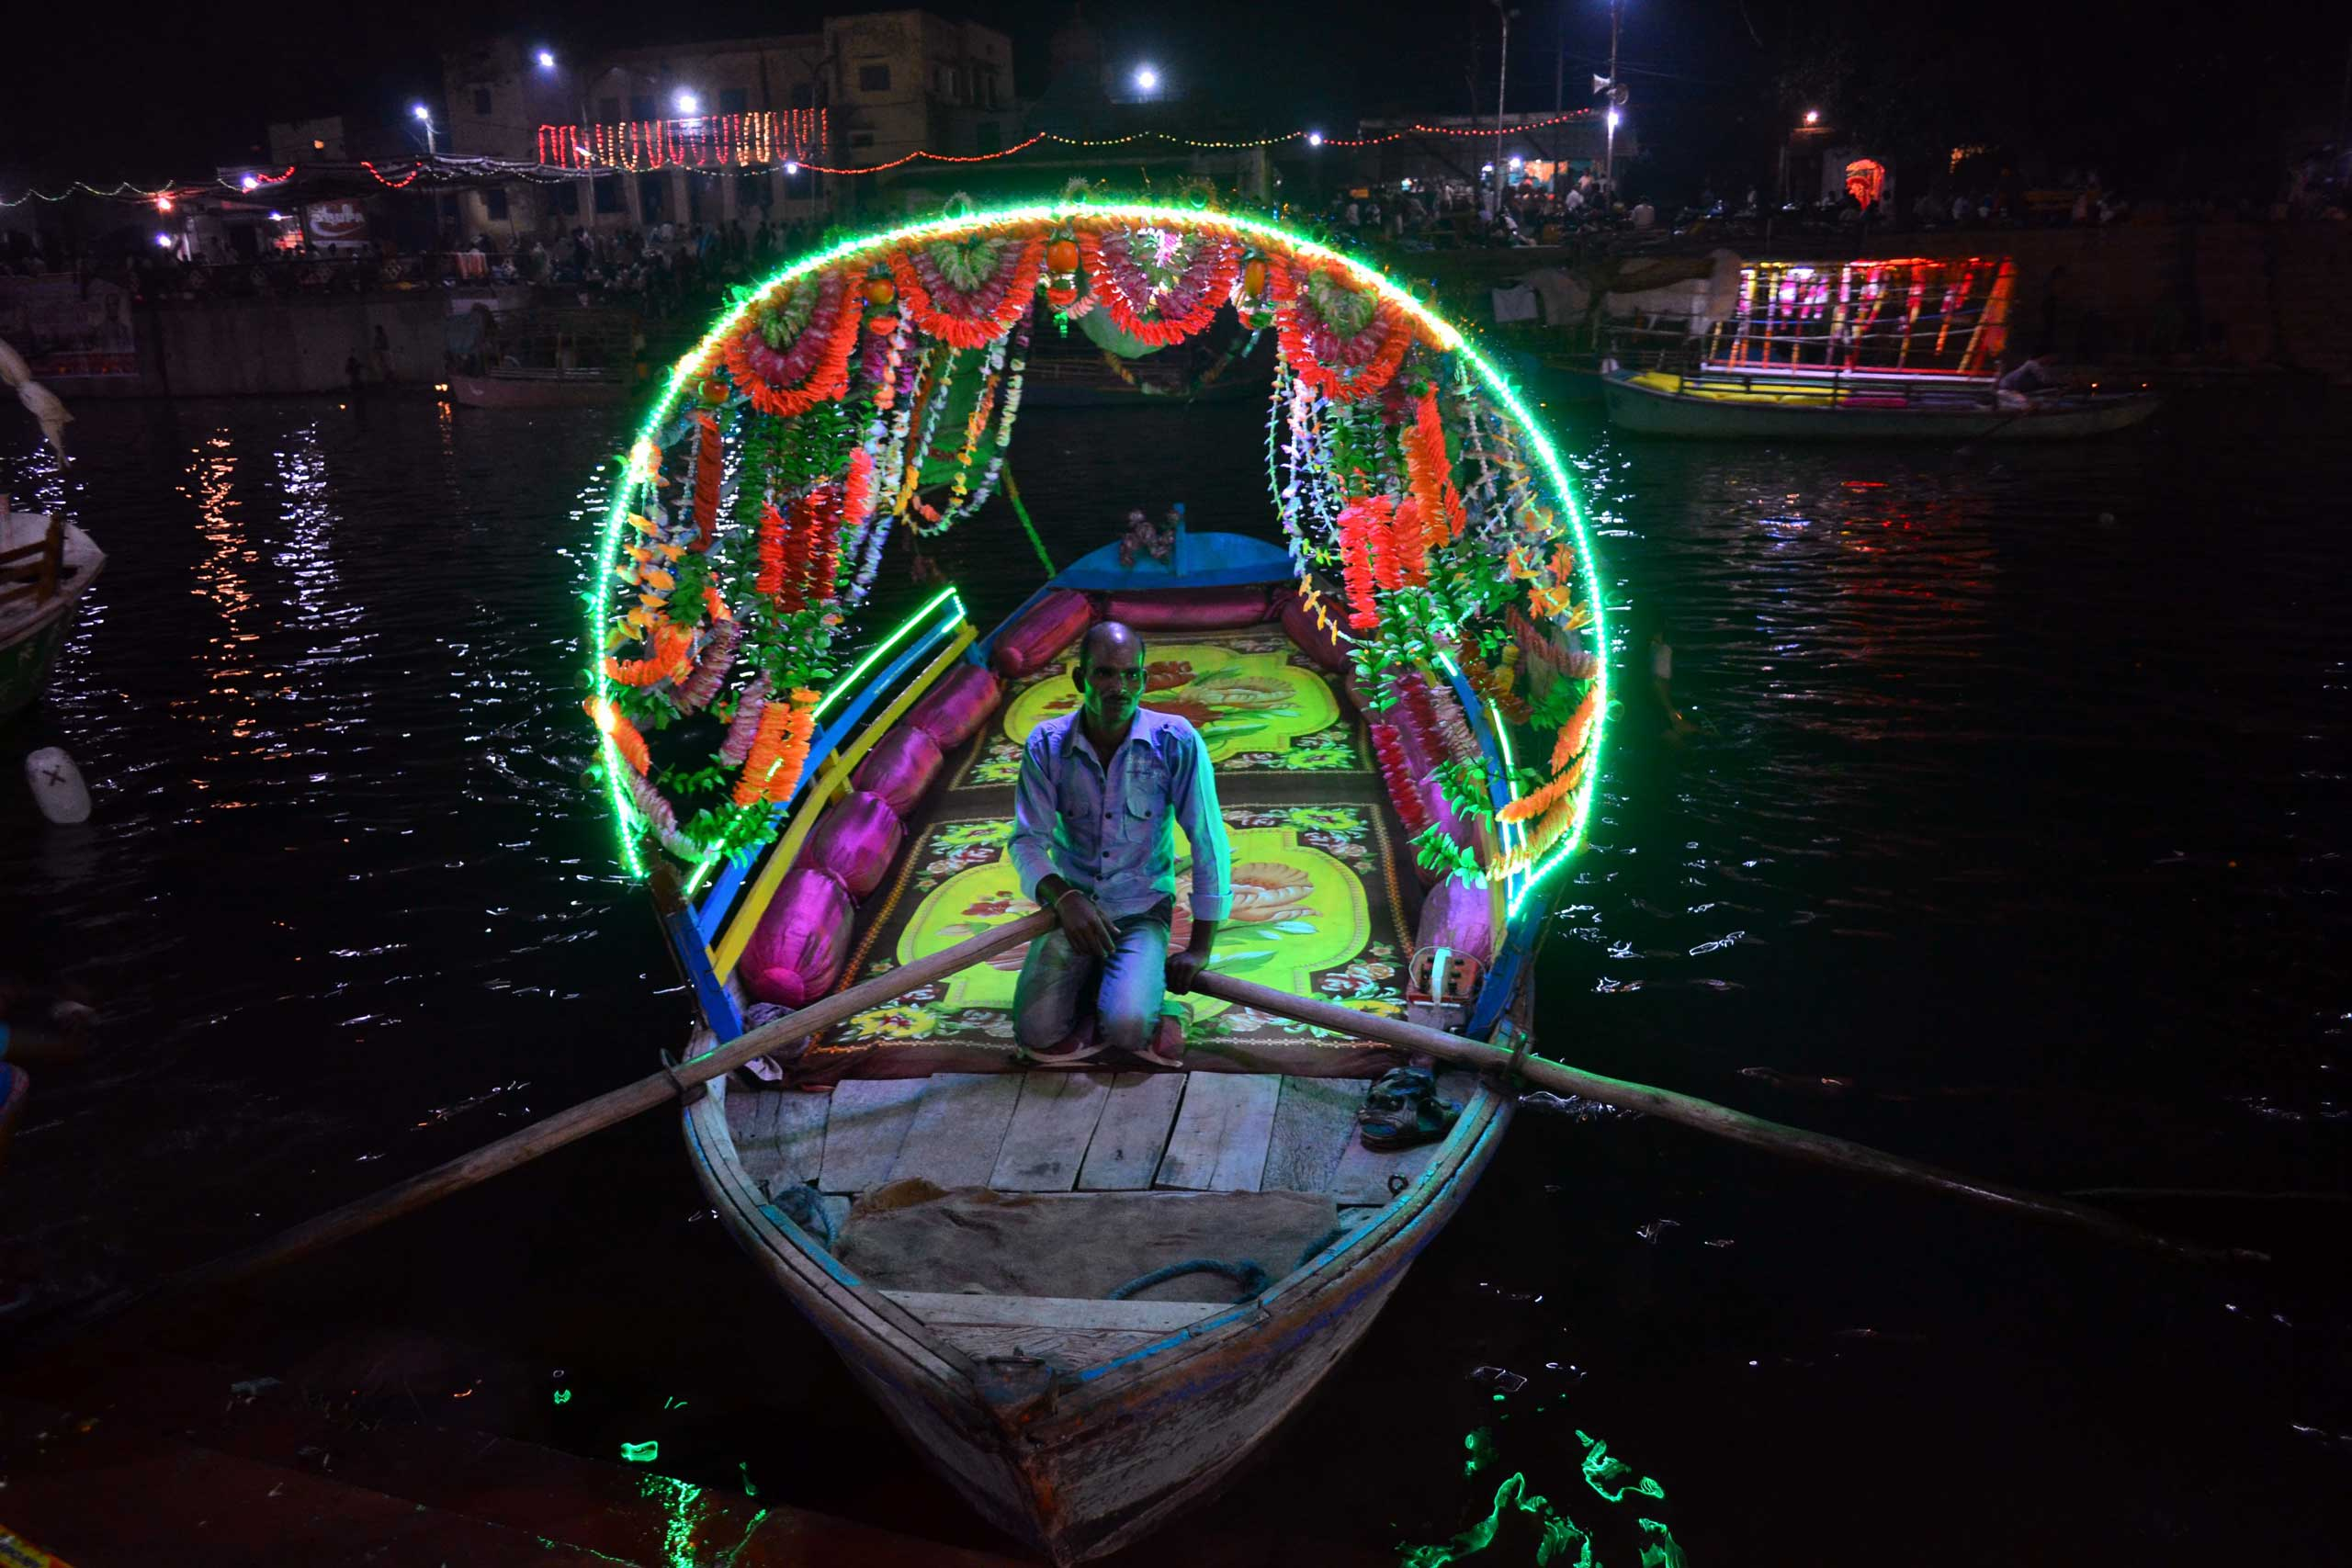 An Indian boatman waits for customers in Chitrakoot, India, on Nov. 11,2015.